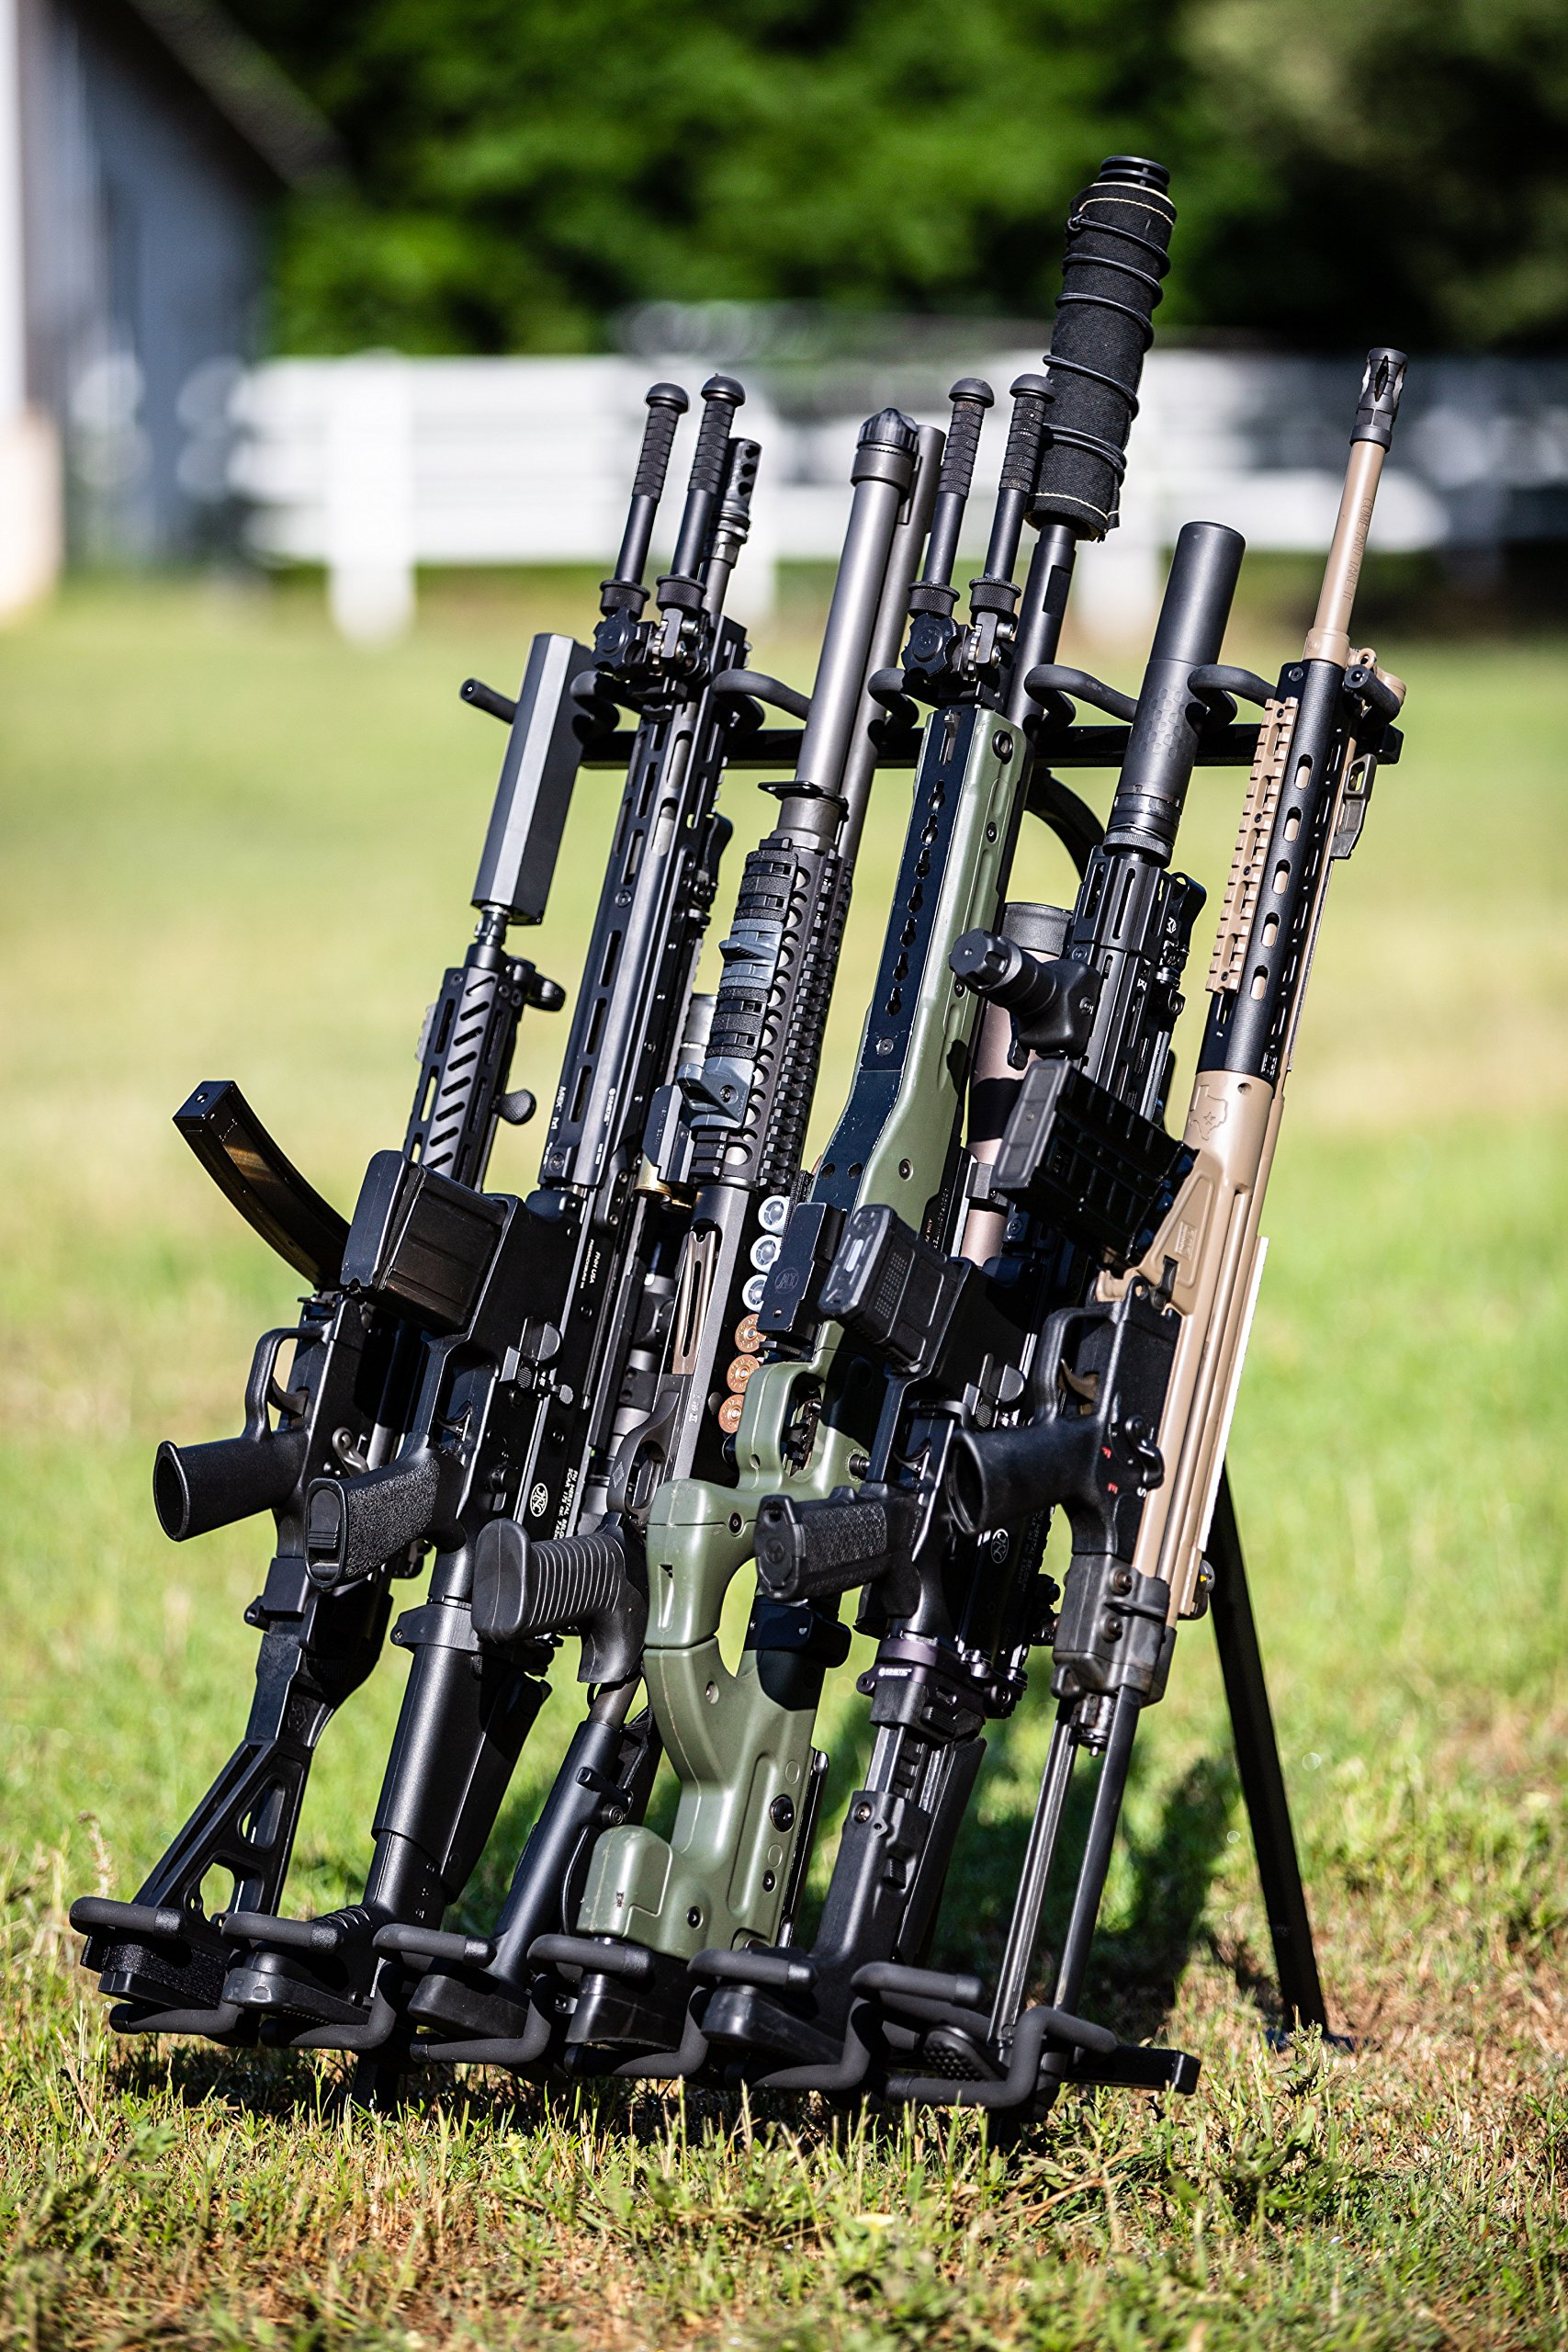 Hold Up Displays Portable Gun Rack and Bow Holder - Tactical Freestanding Folding Firearm Stand Holds Any Rifle or Bow - Keeps Guns Organized at The Shooting Range - Made in USA with Heavy Duty Steel by Hold Up Displays (Image #8)